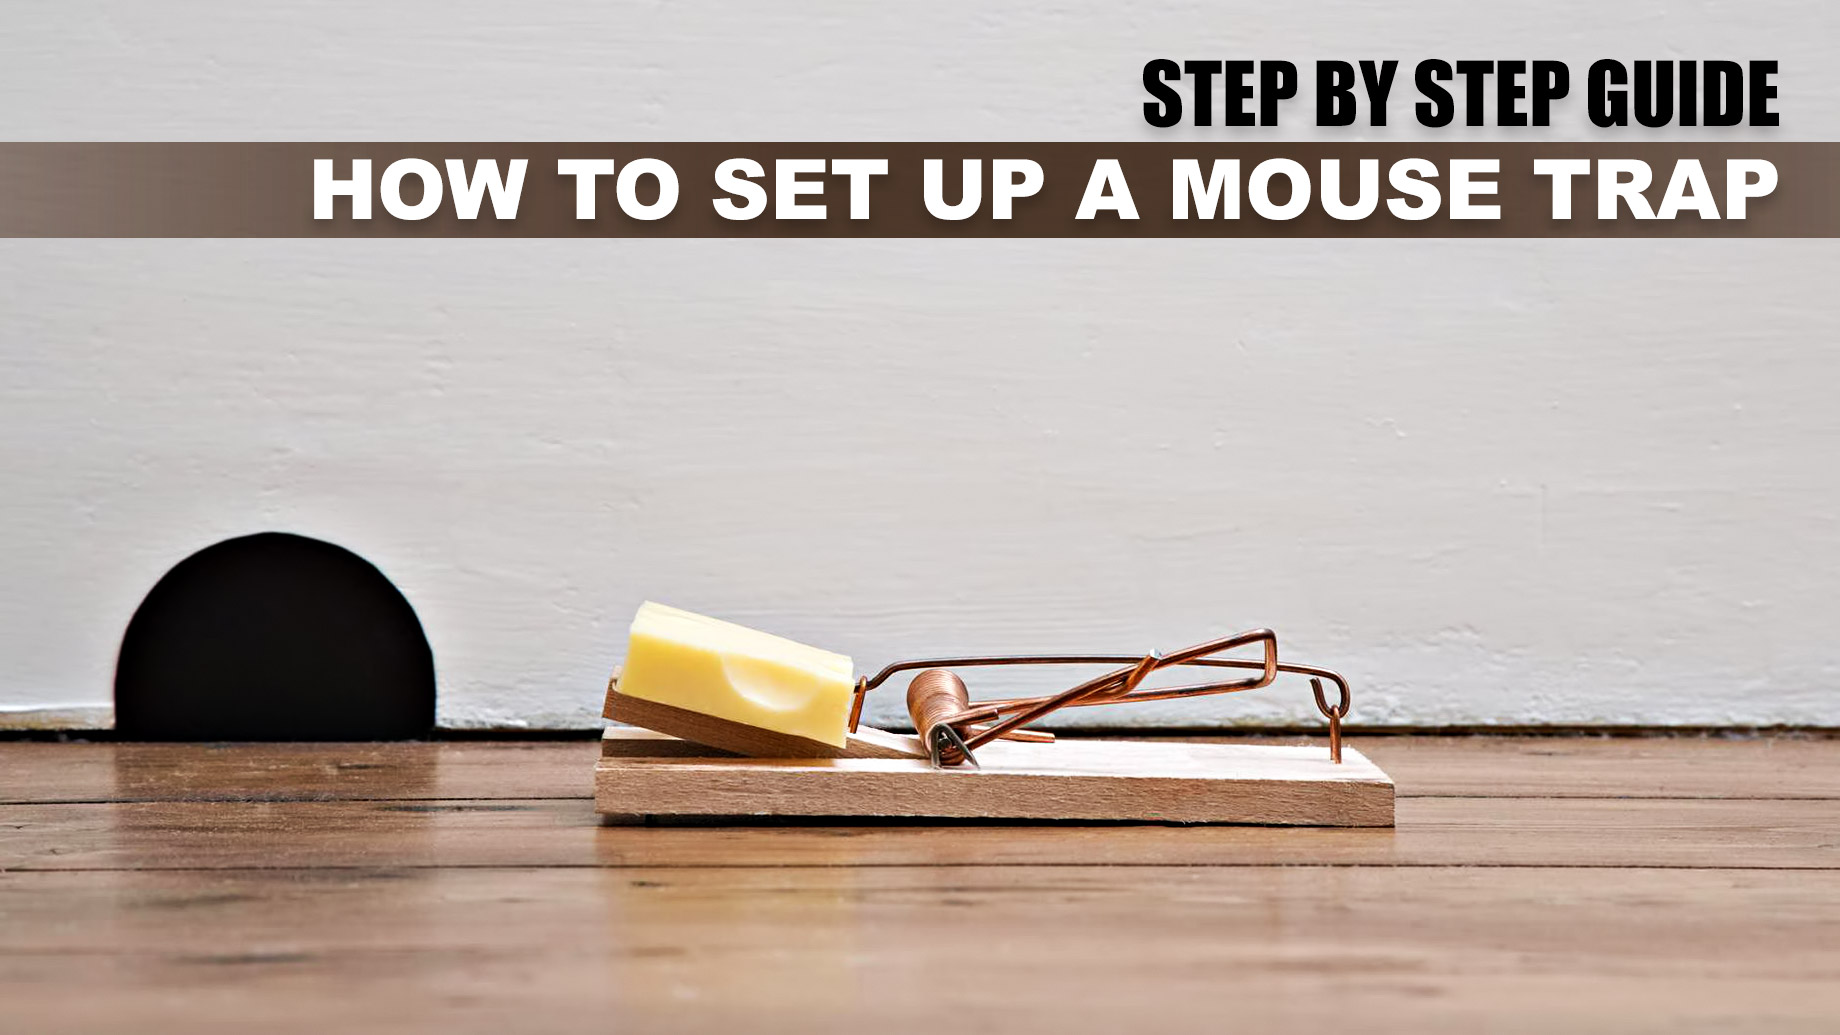 Step by Step Guide on How to Set Up a Mouse Trap